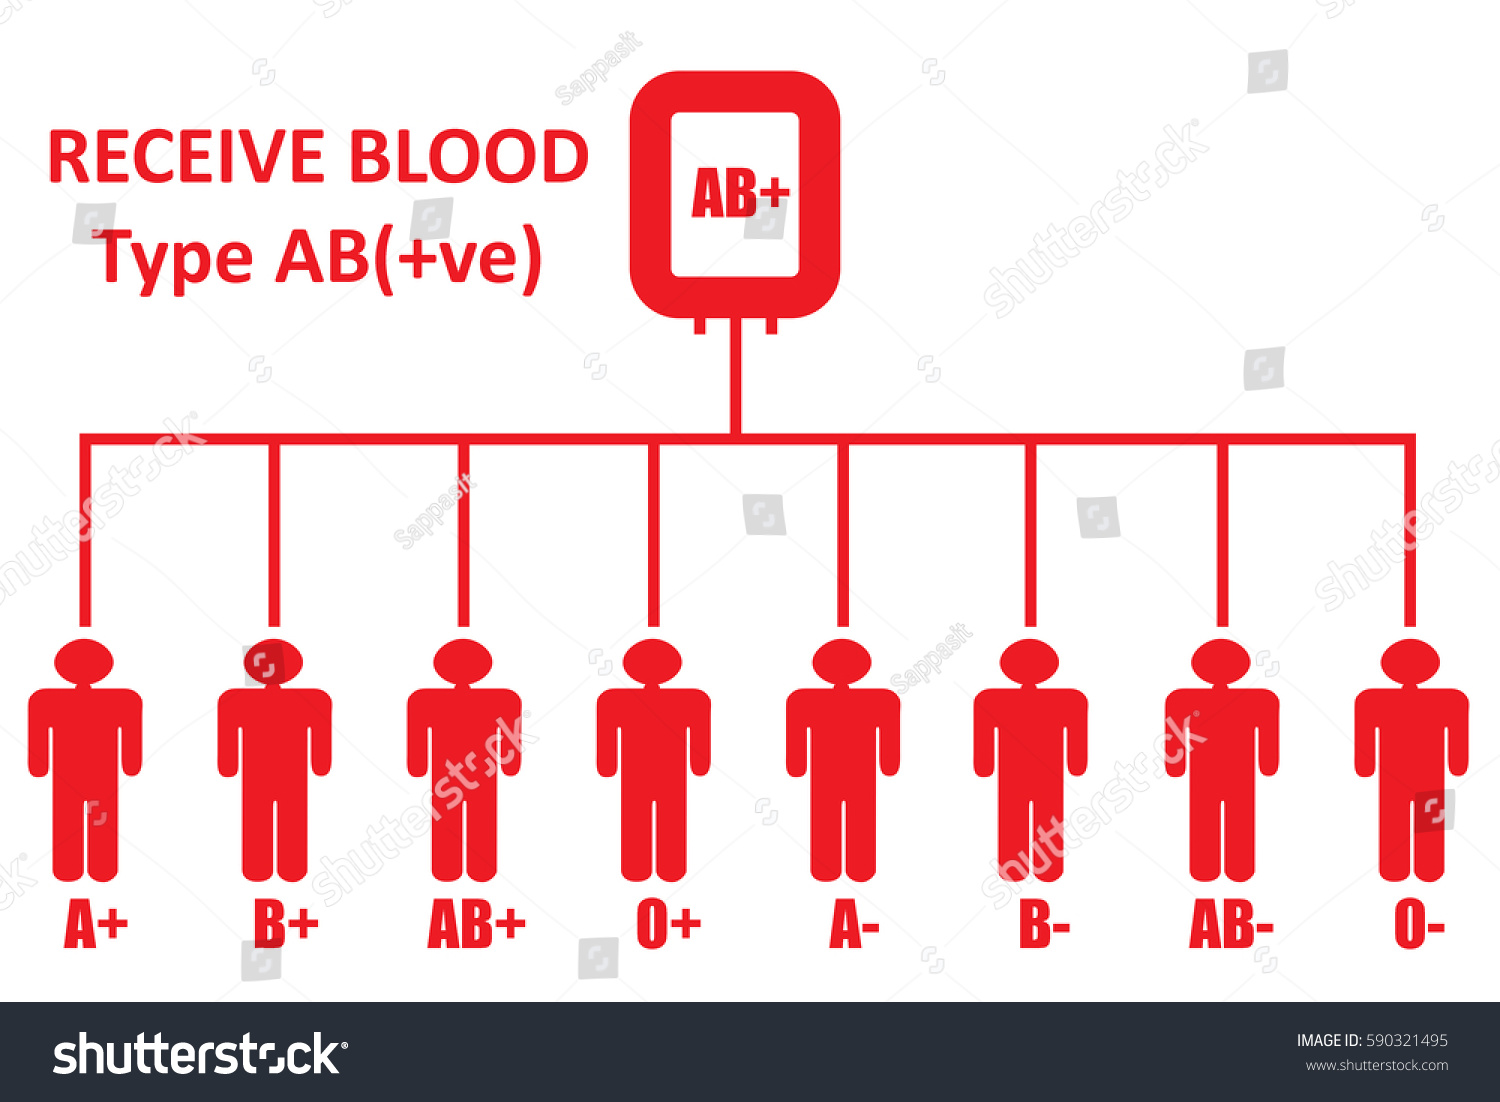 Blood donationblood group type ab positive stock illustration blood donationblood group type ab positive can receive blood from pooptronica